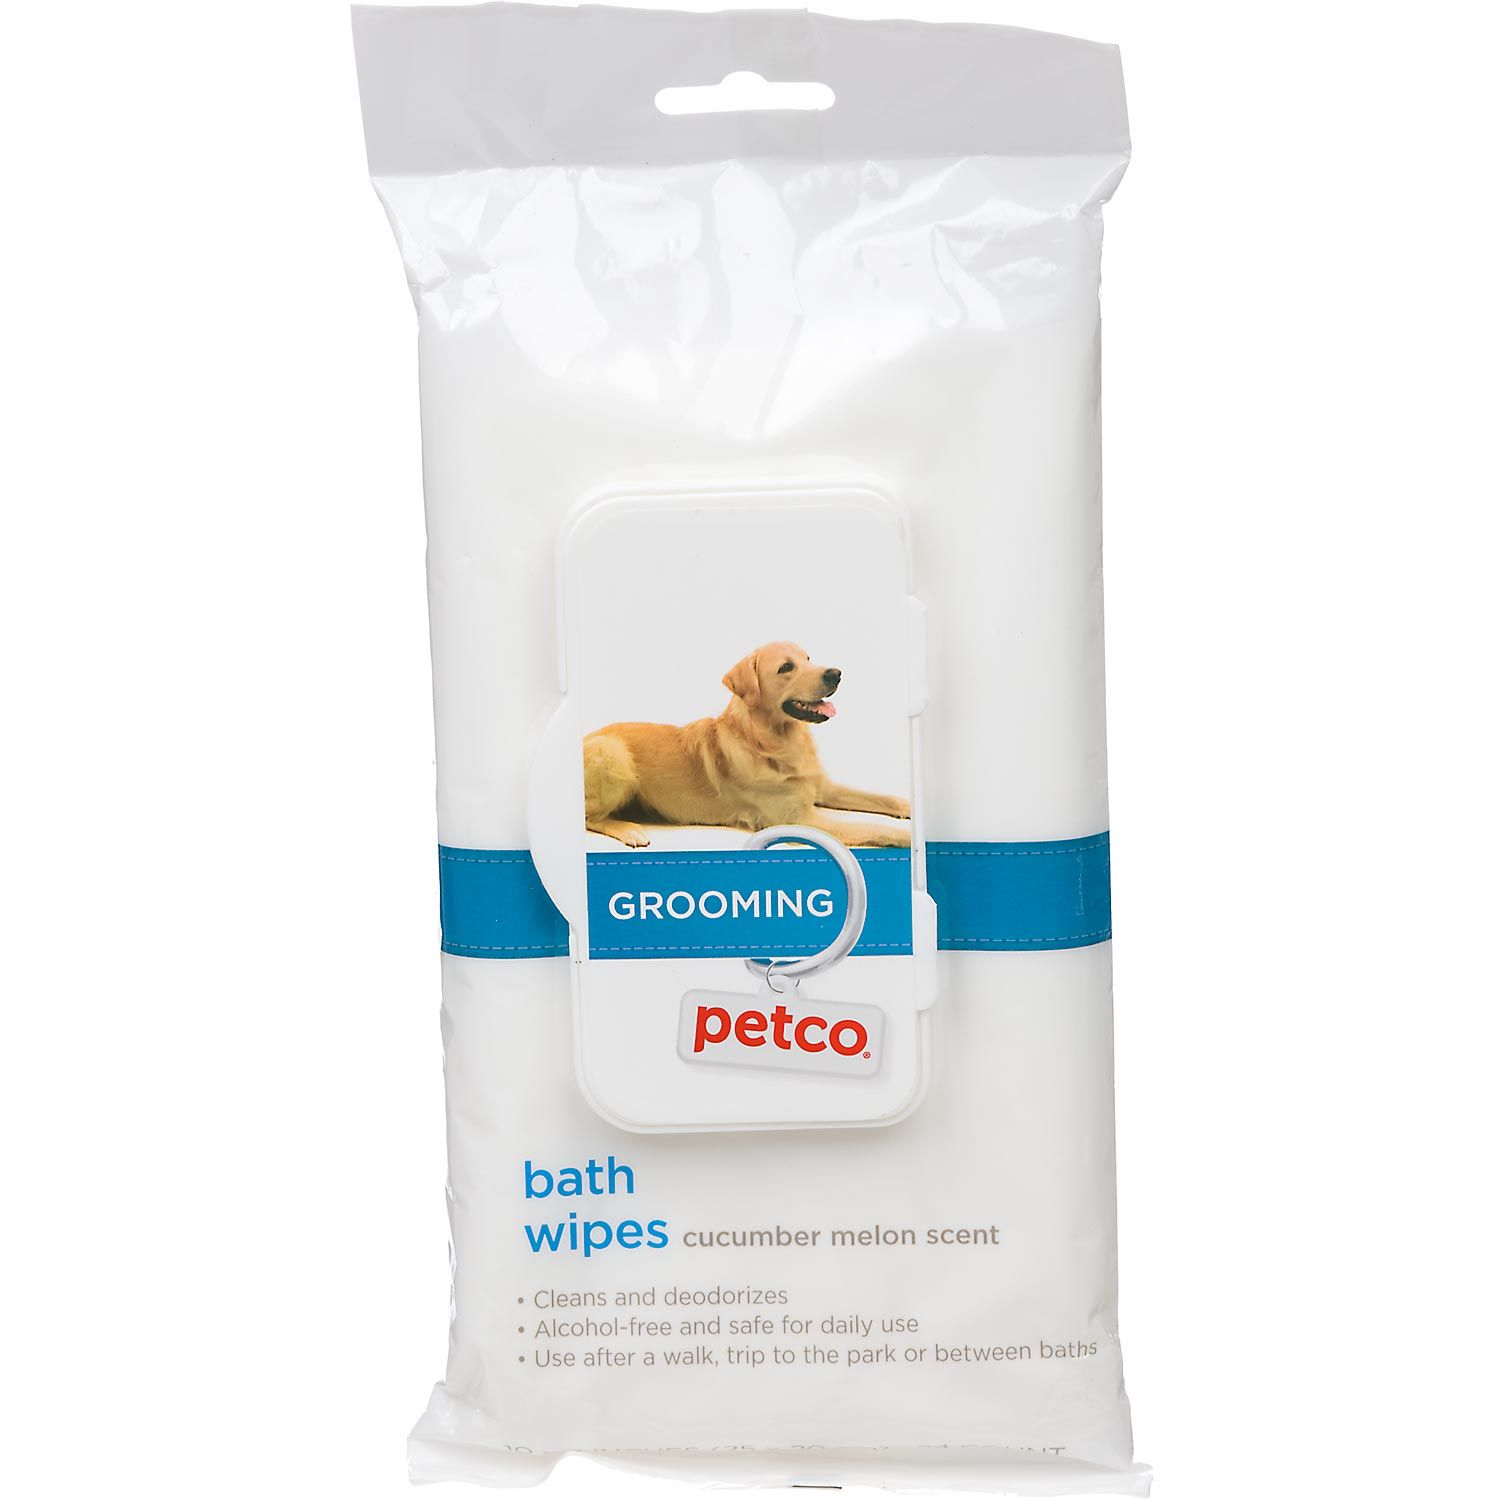 Petco Cucumber Melon Scent Grooming Wipes For Dogs With Images Petco Holistic Pet Grooming